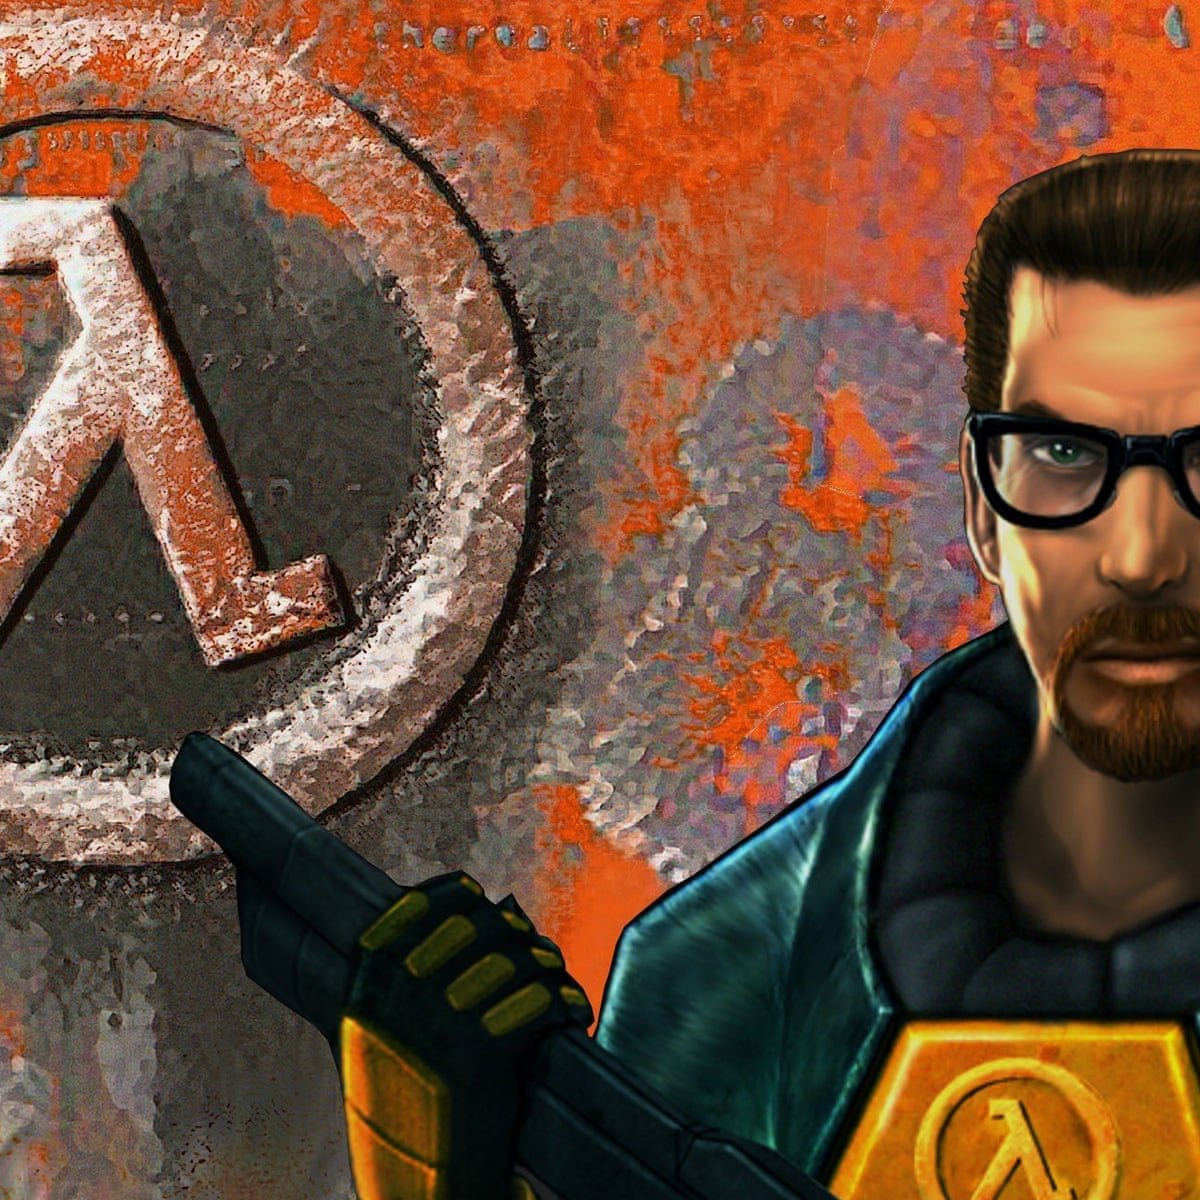 Roblox Gordon Freeman Hair Half Life At 20 Why It Is The Most Important Shooter Ever Made Games The Guardian